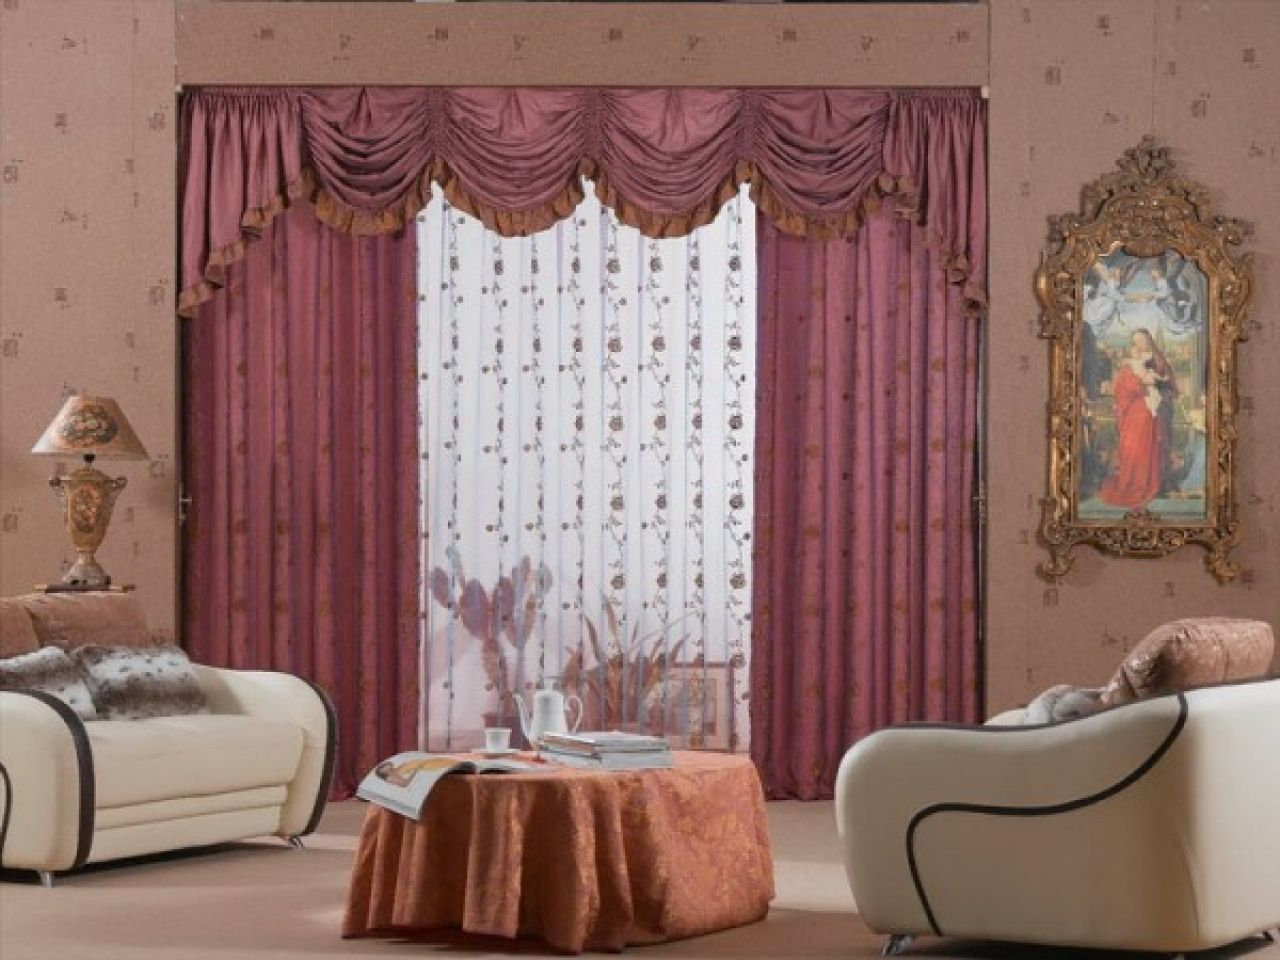 Curtain Designs For Living Room Pinpavlina Dimitrova On Пердета И Щори  Pinterest